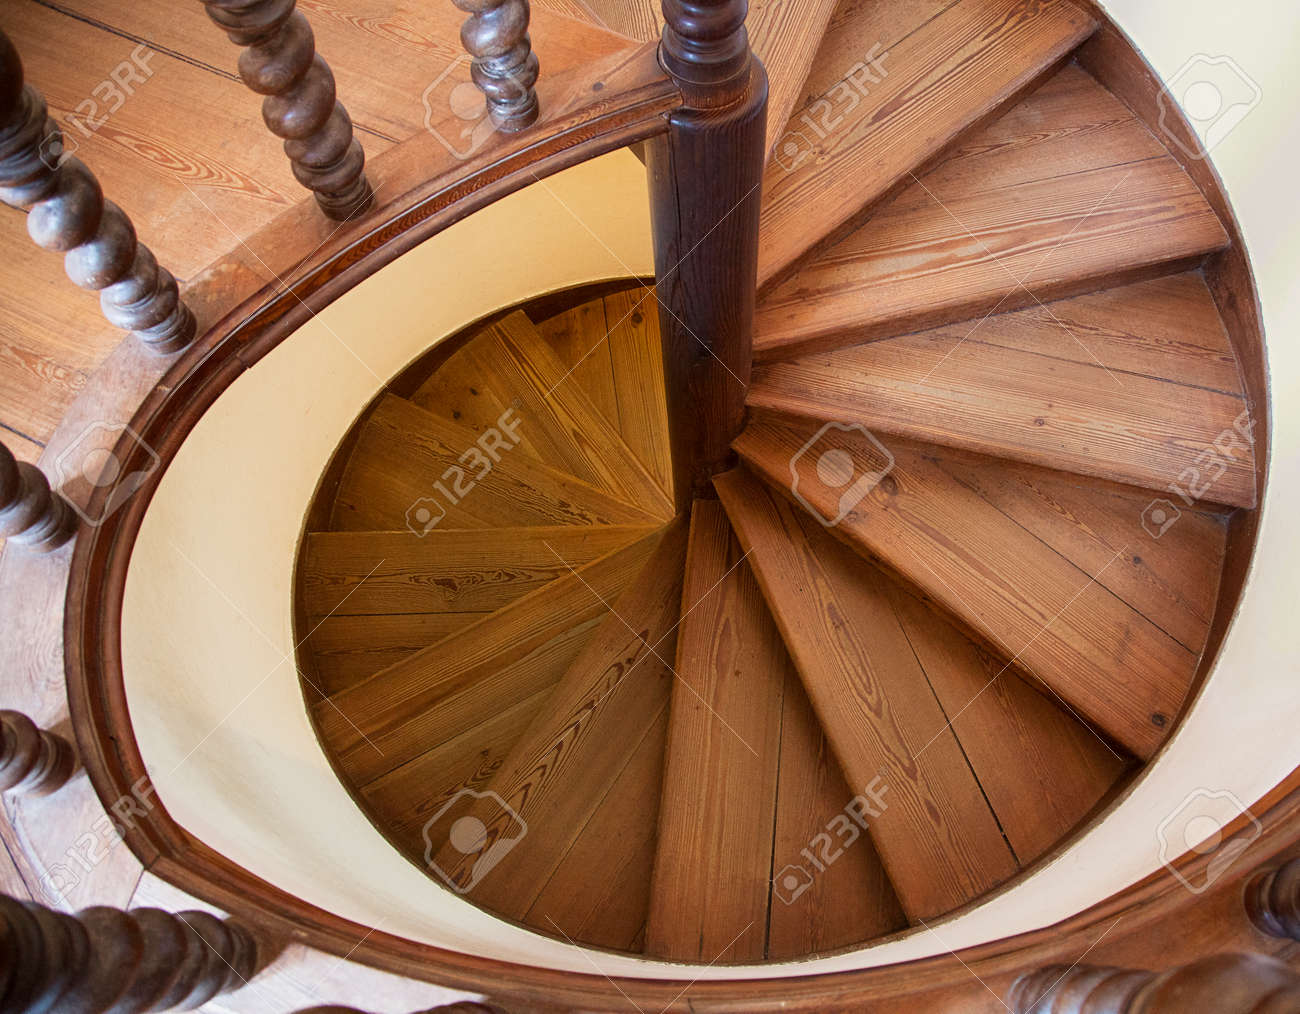 Spiral Staircase View From Above Abstract Architecture Stock Photo